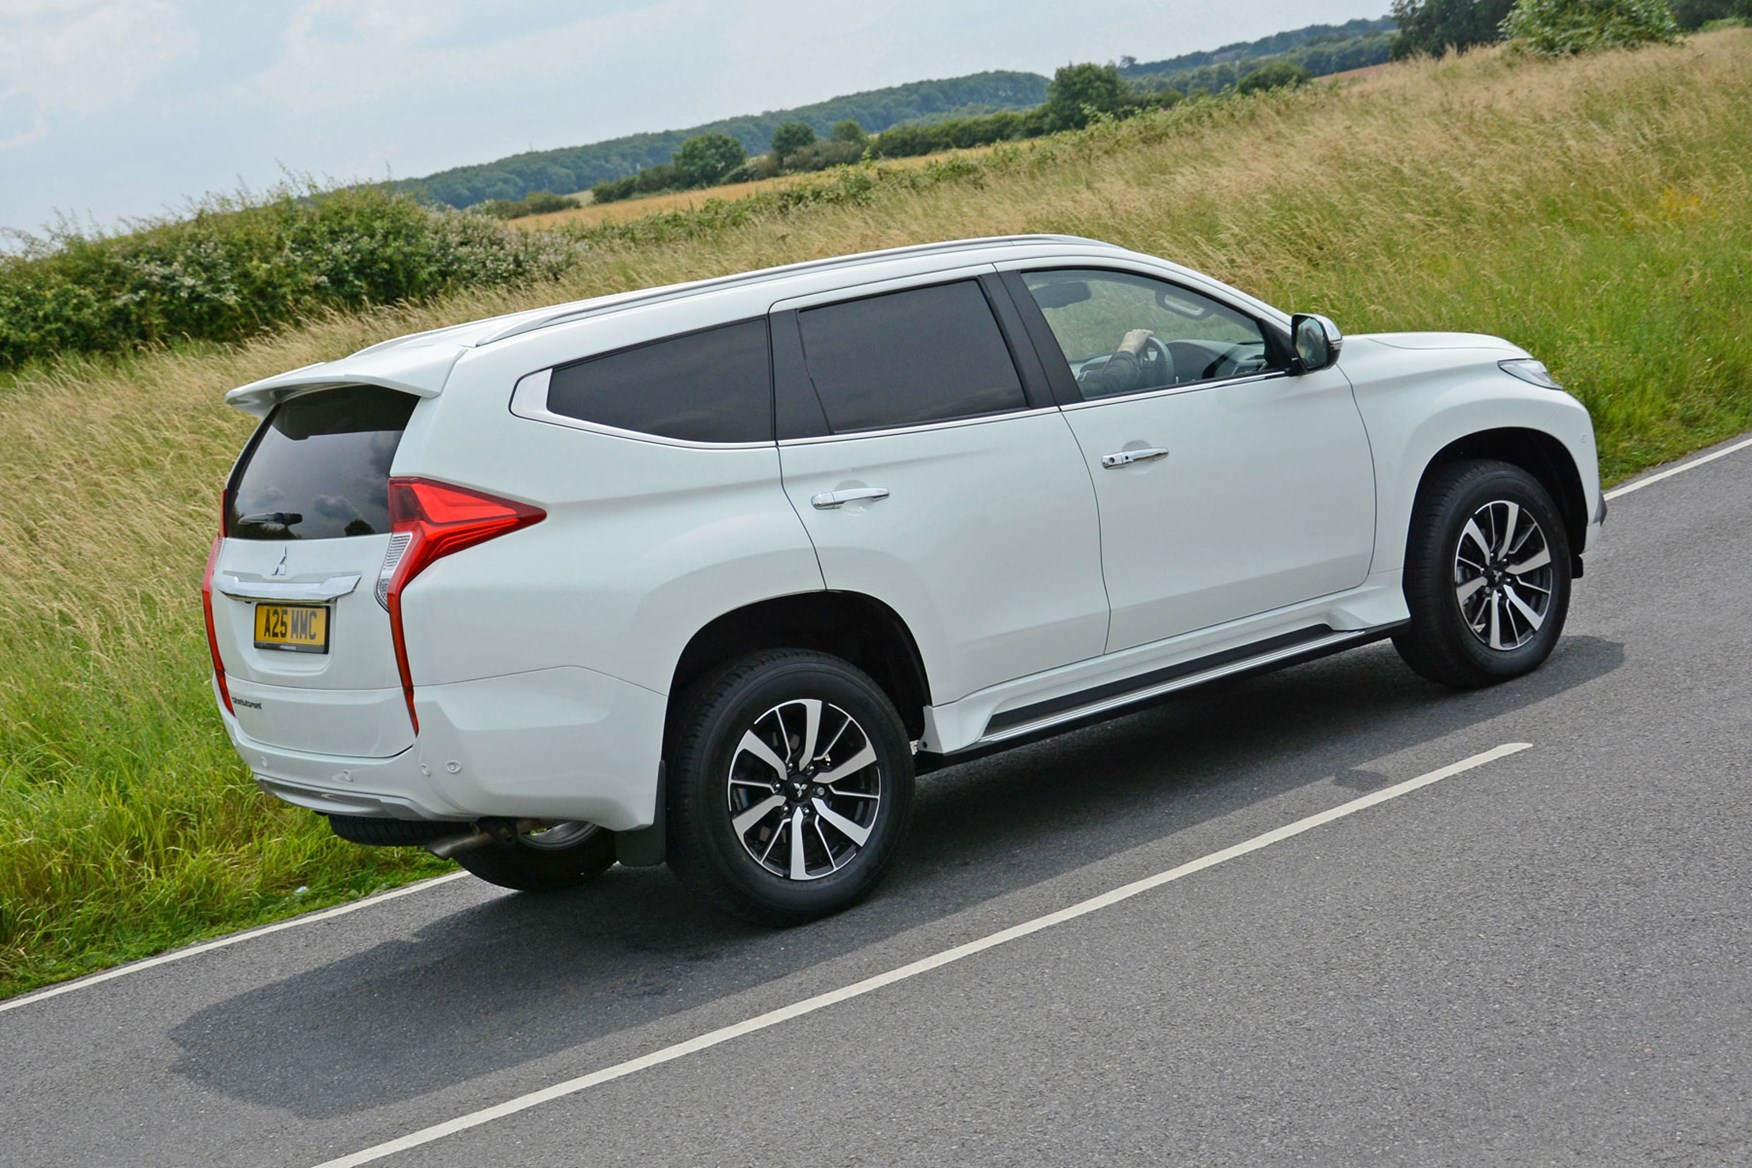 Mitsubishi Outlander Commercial 4x4 van review - rear view, white, driving